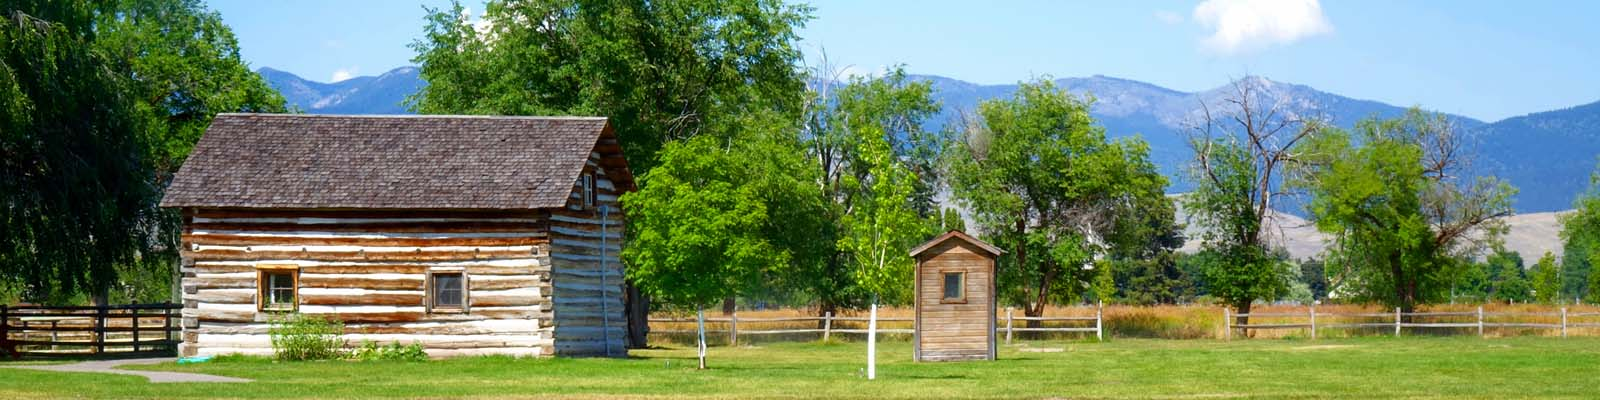 This is an image of a farmhouse in Missoula. ASTA-USA provides professional translation services in this city.